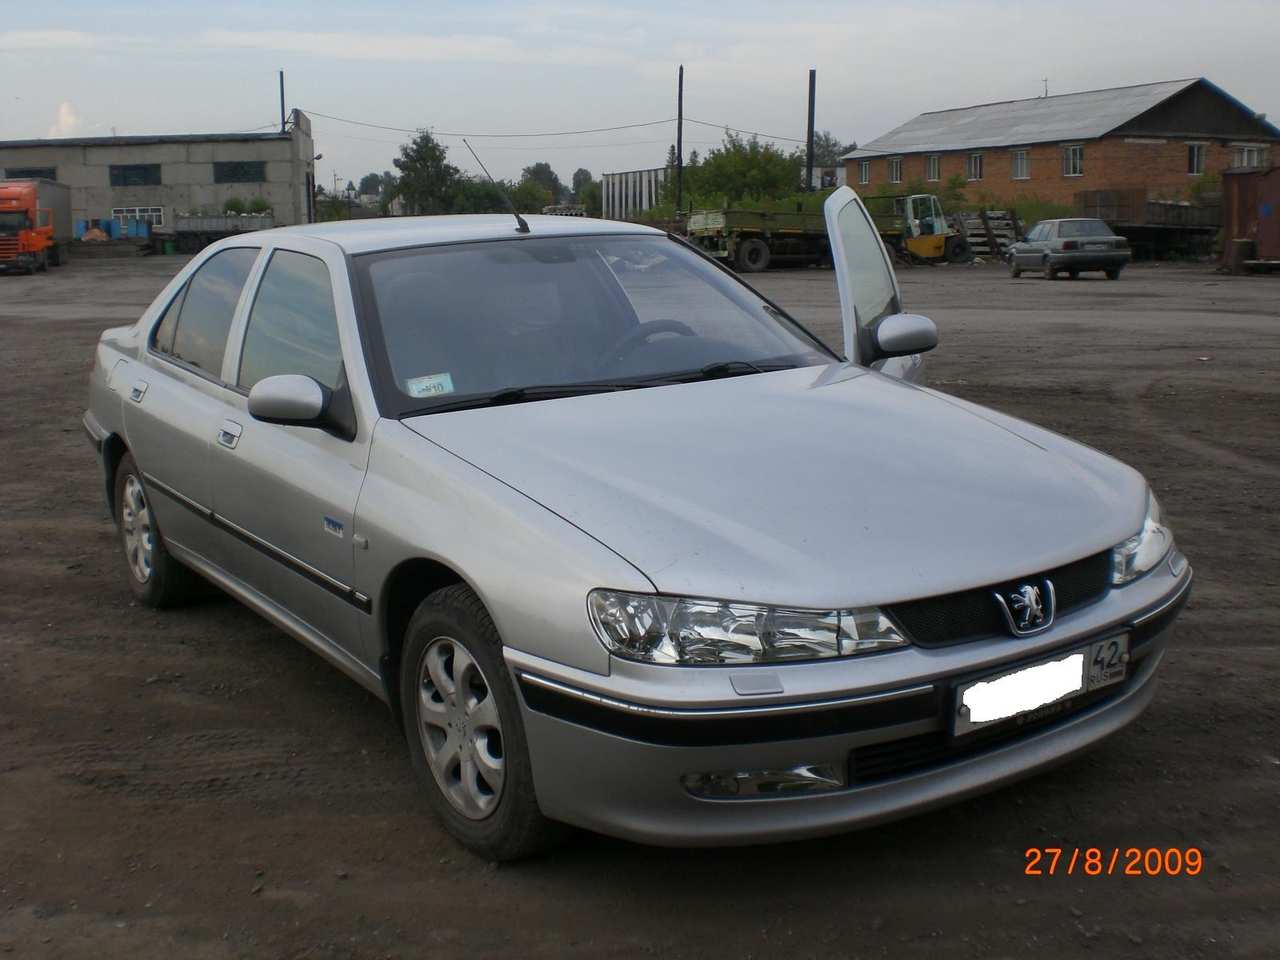 2003 Peugeot 406 Photos, 2.0, Gasoline, FF, Manual For Sale